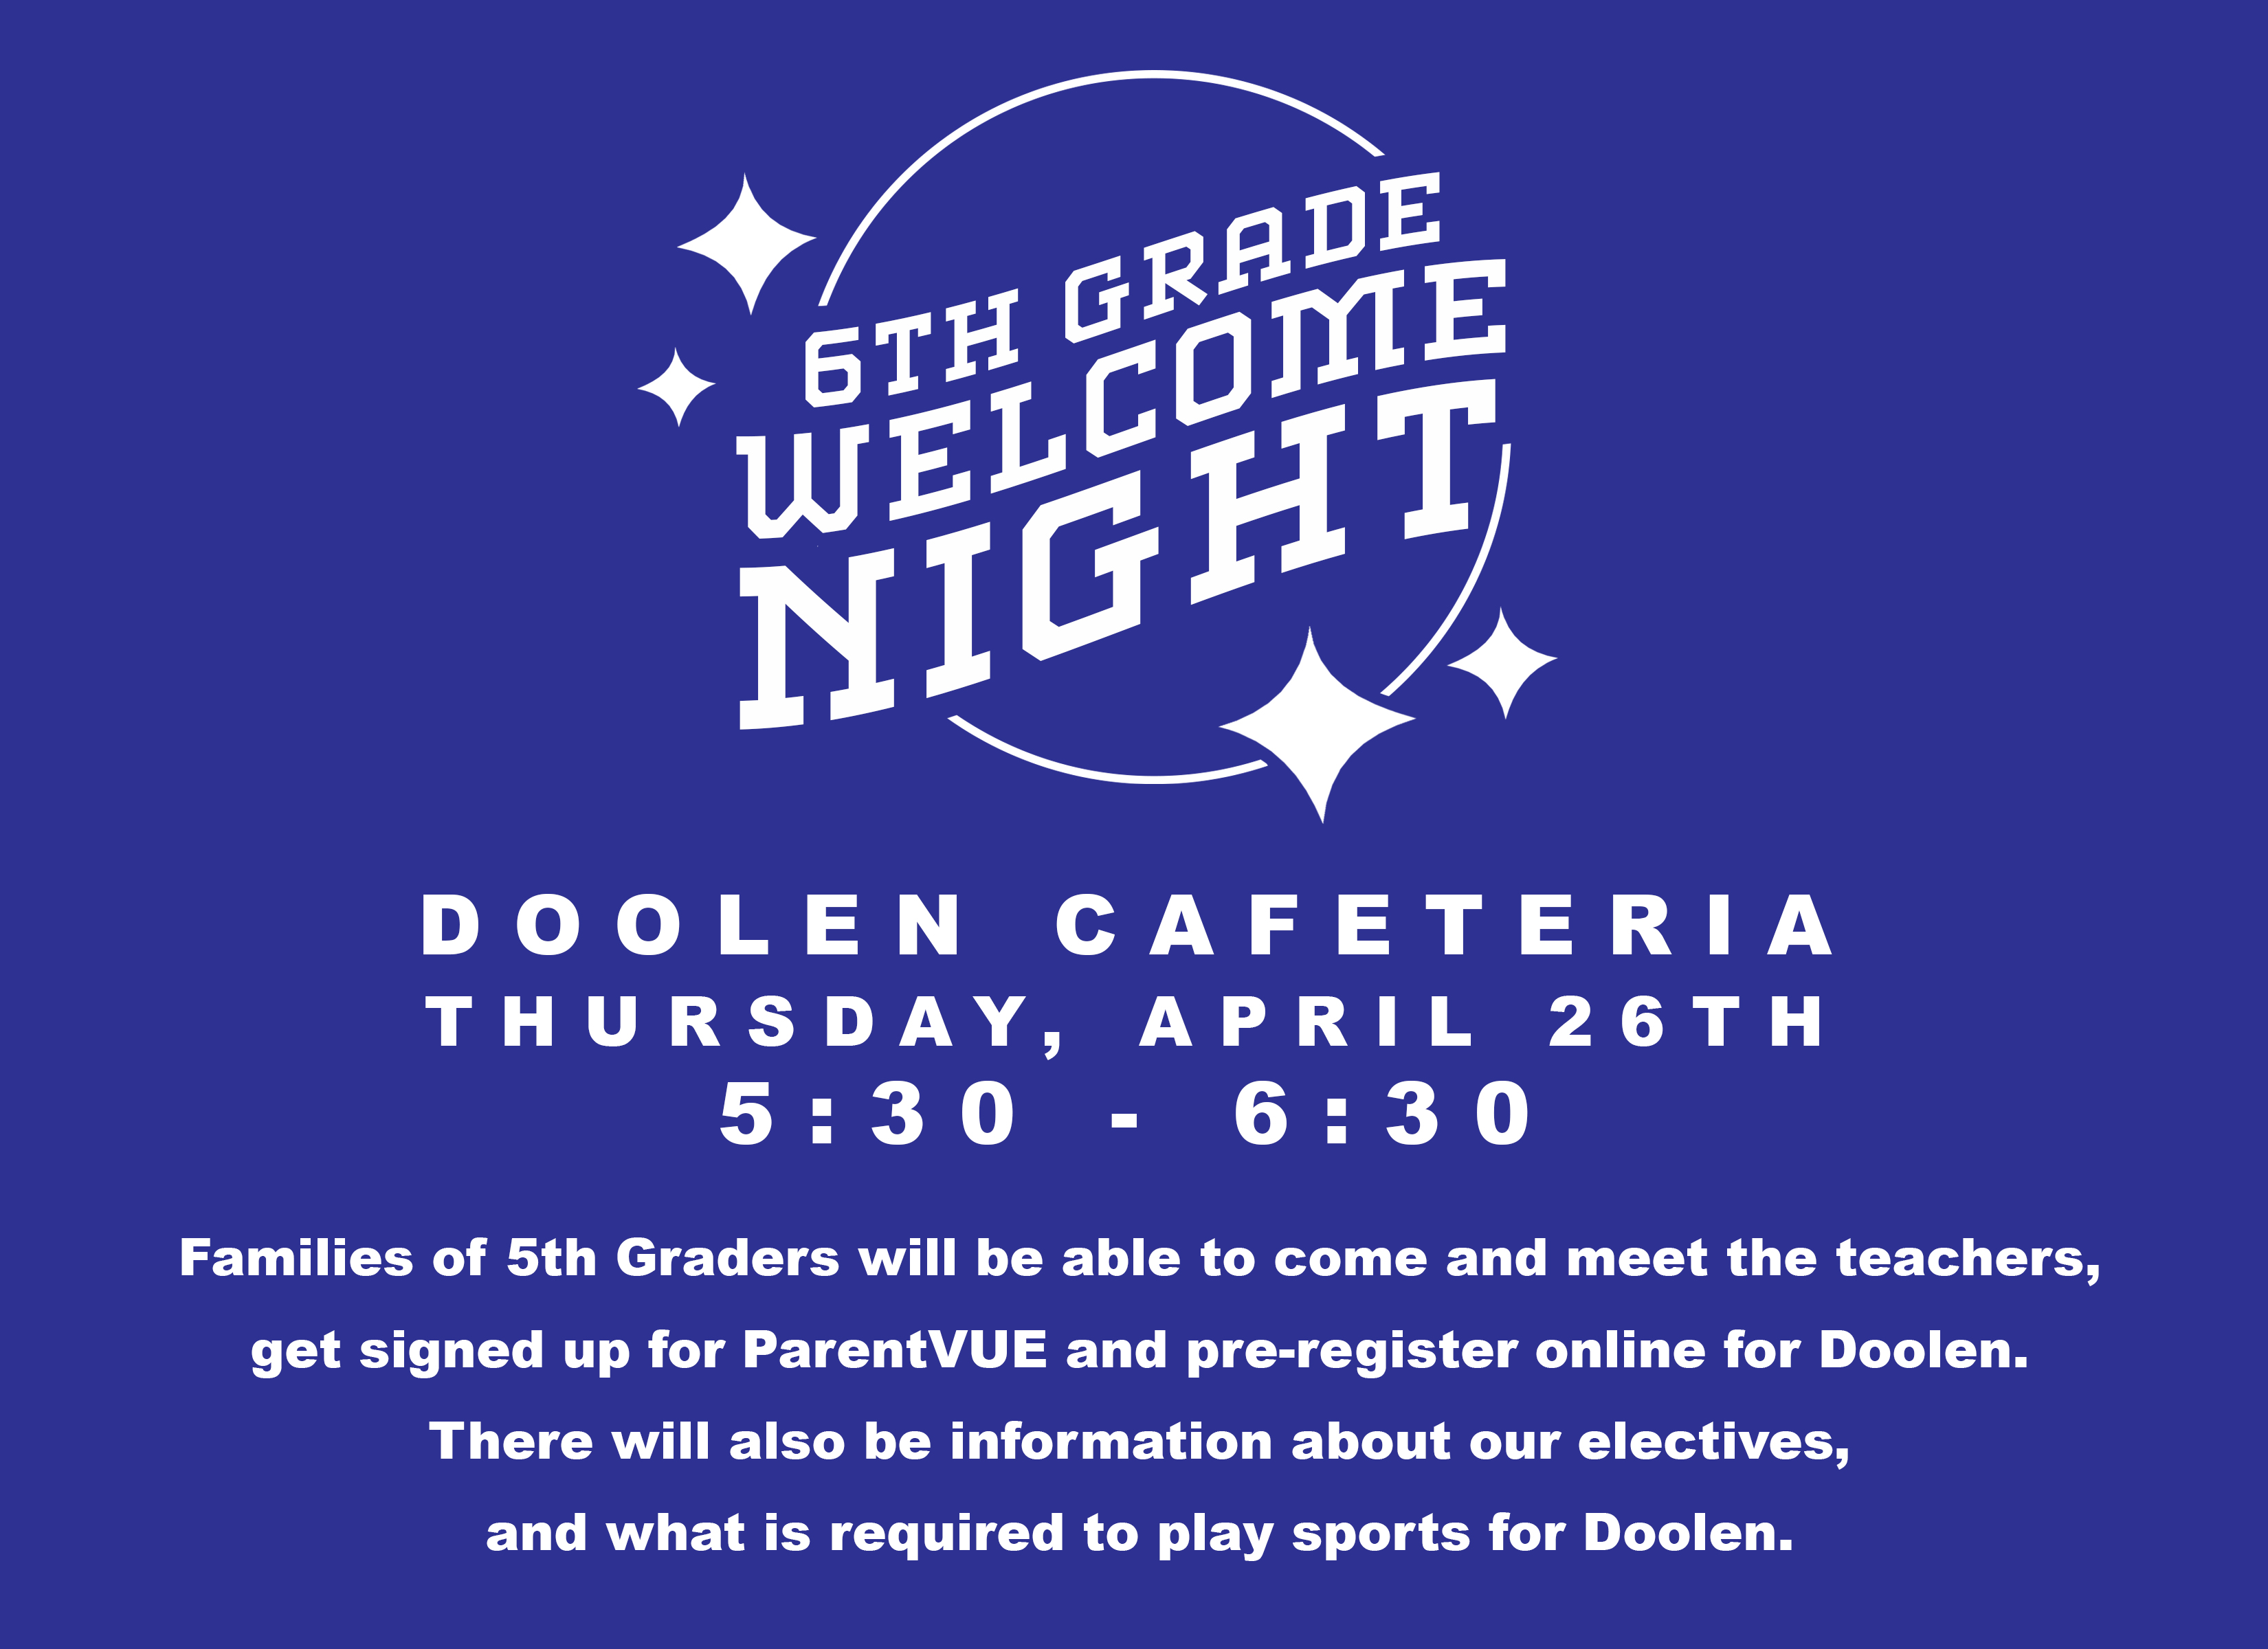 6th grade welcome night doolen cafeteria thursday april 26th from 5:30 to 6:30 families of 5th grades will be able to come and meet the teachers get signed up for parent vue and pre register online for doolen